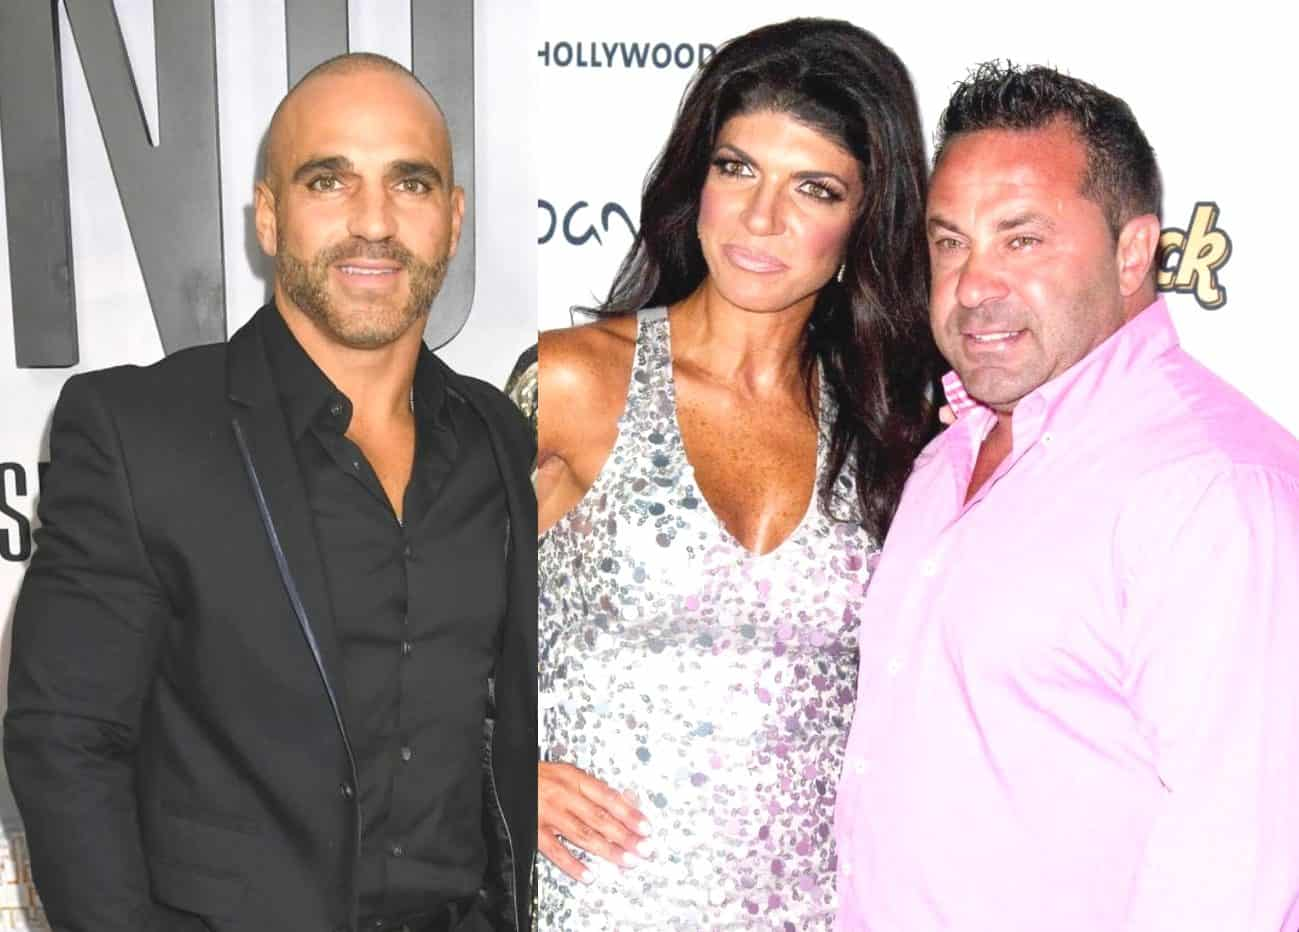 RHONJ Star Joe Gorga Says Joe Giudice 'Doesn't Know How to Act Right,' Reveals There's No Chance of Reconciliation Between Him and Wife Teresa and Kicks Off Comedy Tour